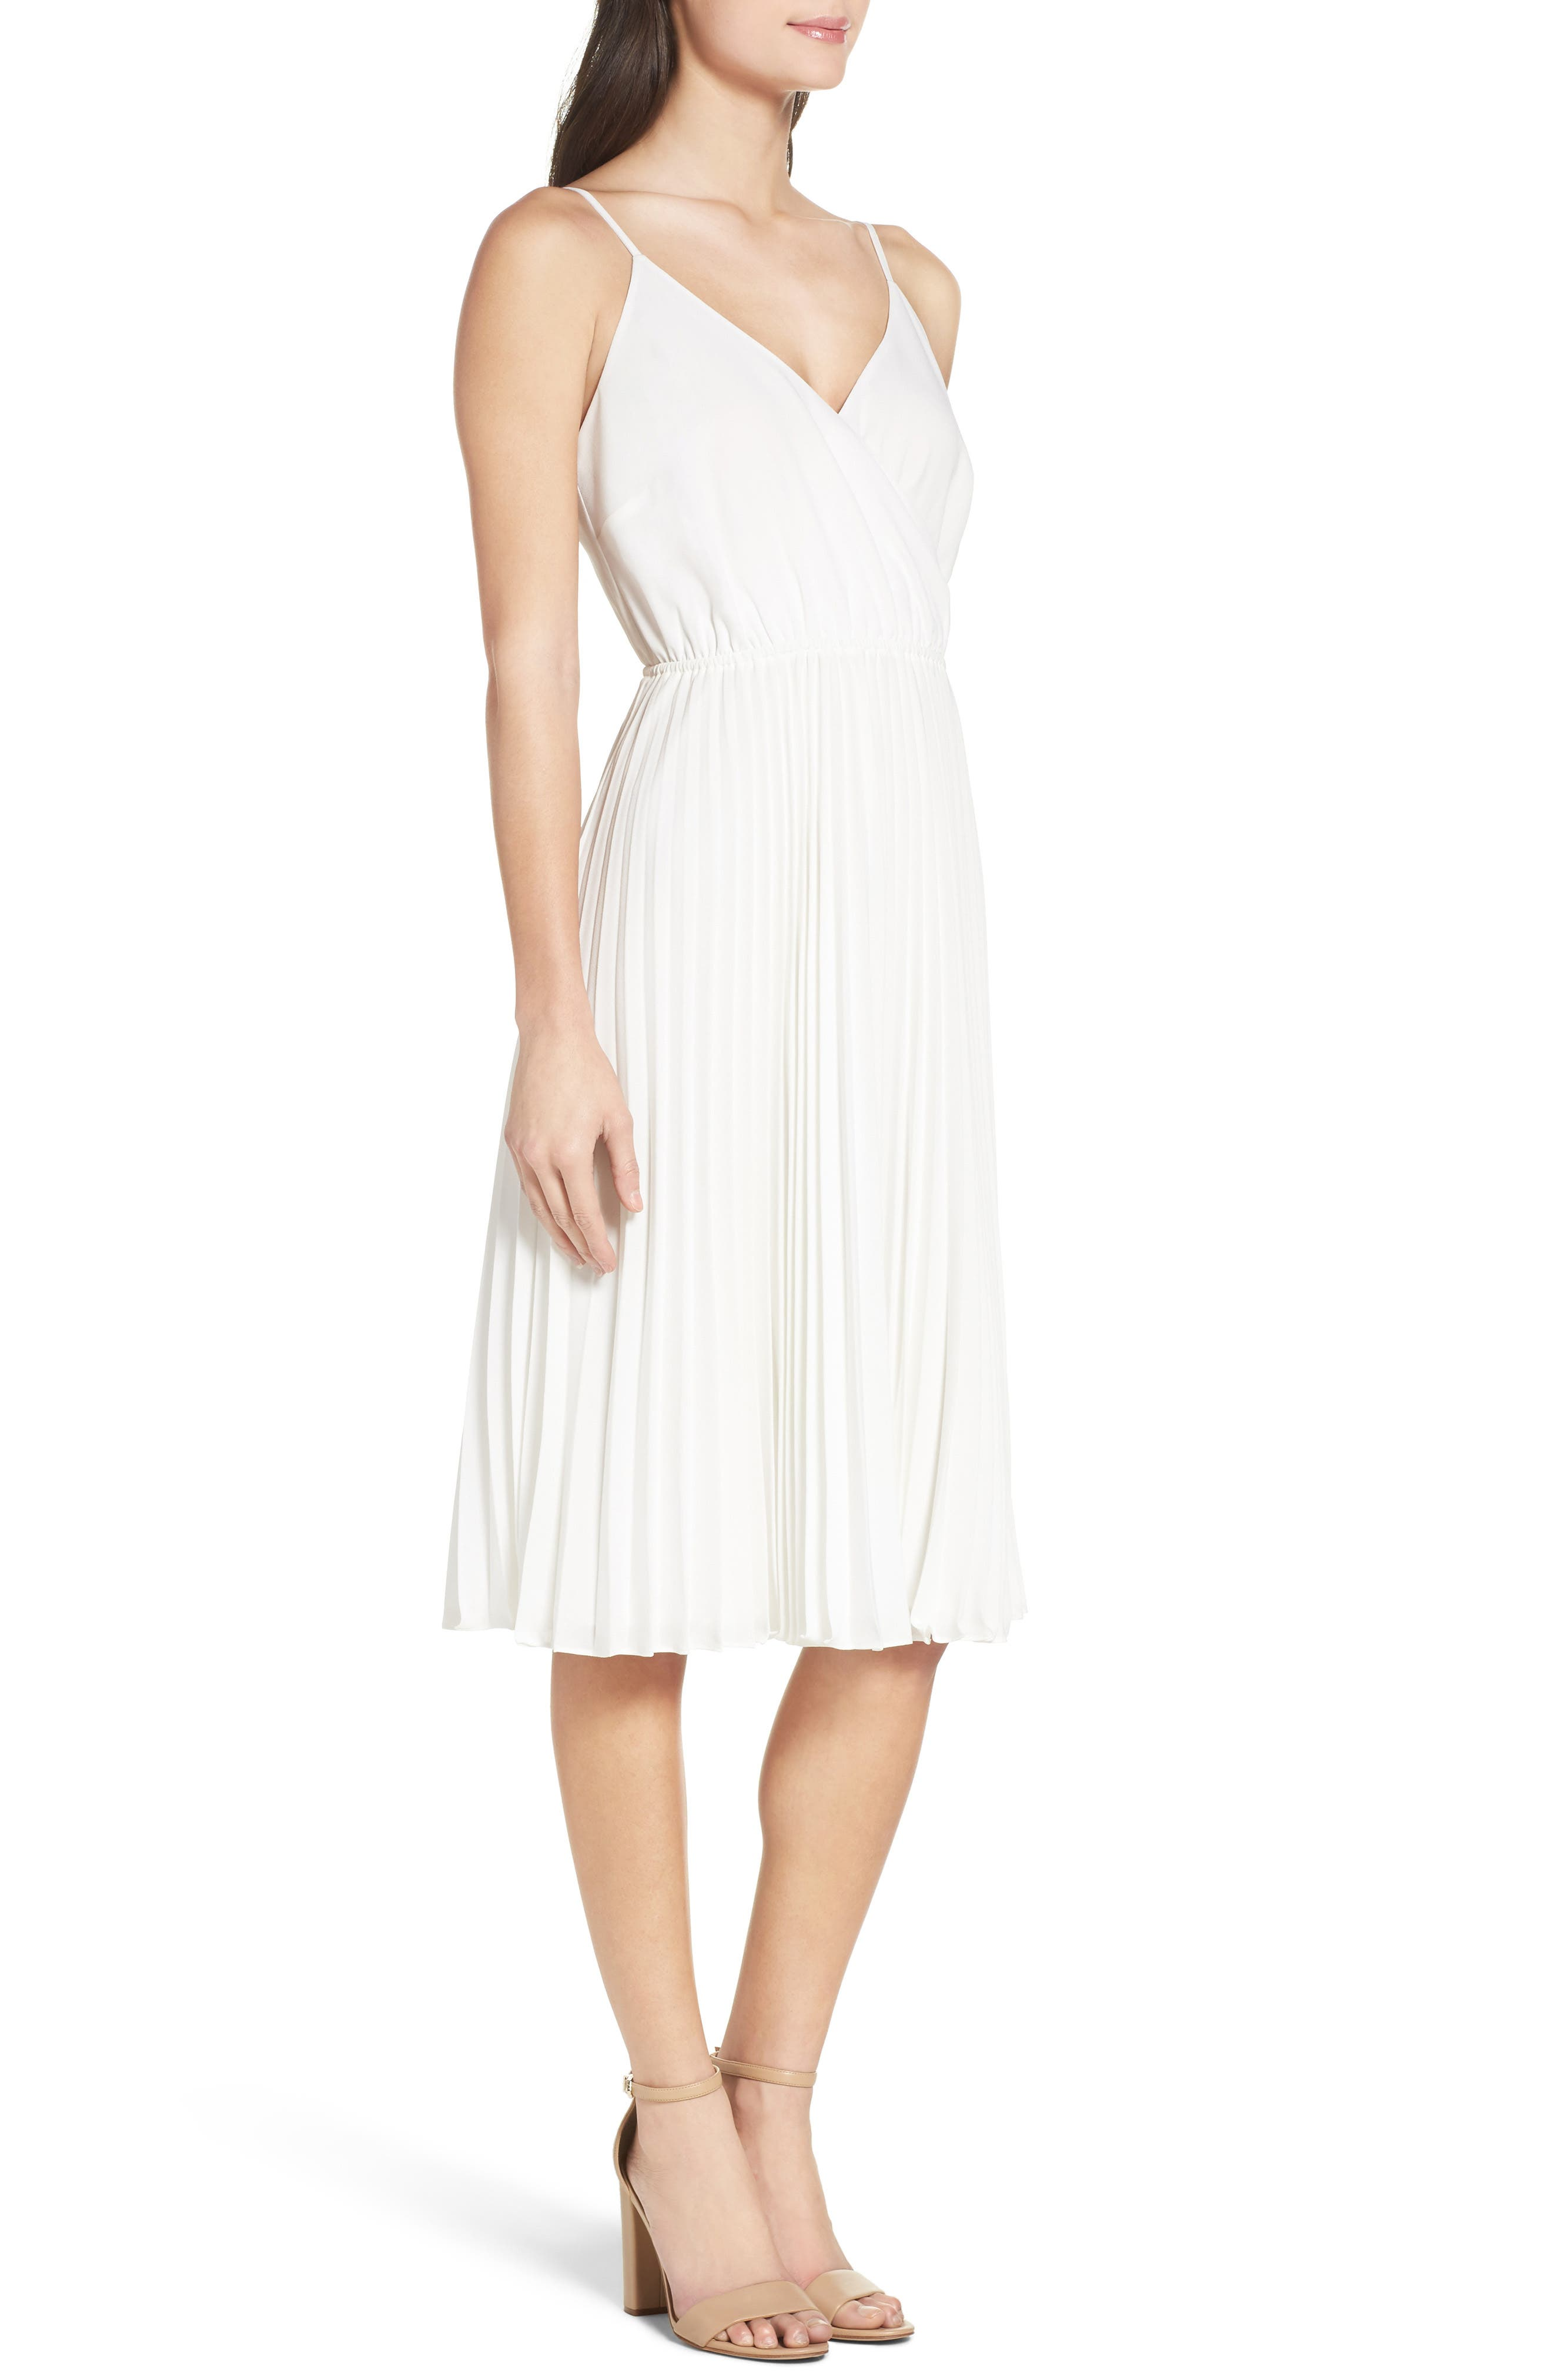 Lily Pond Fit & Flare Dress,                             Alternate thumbnail 3, color,                             WHITE